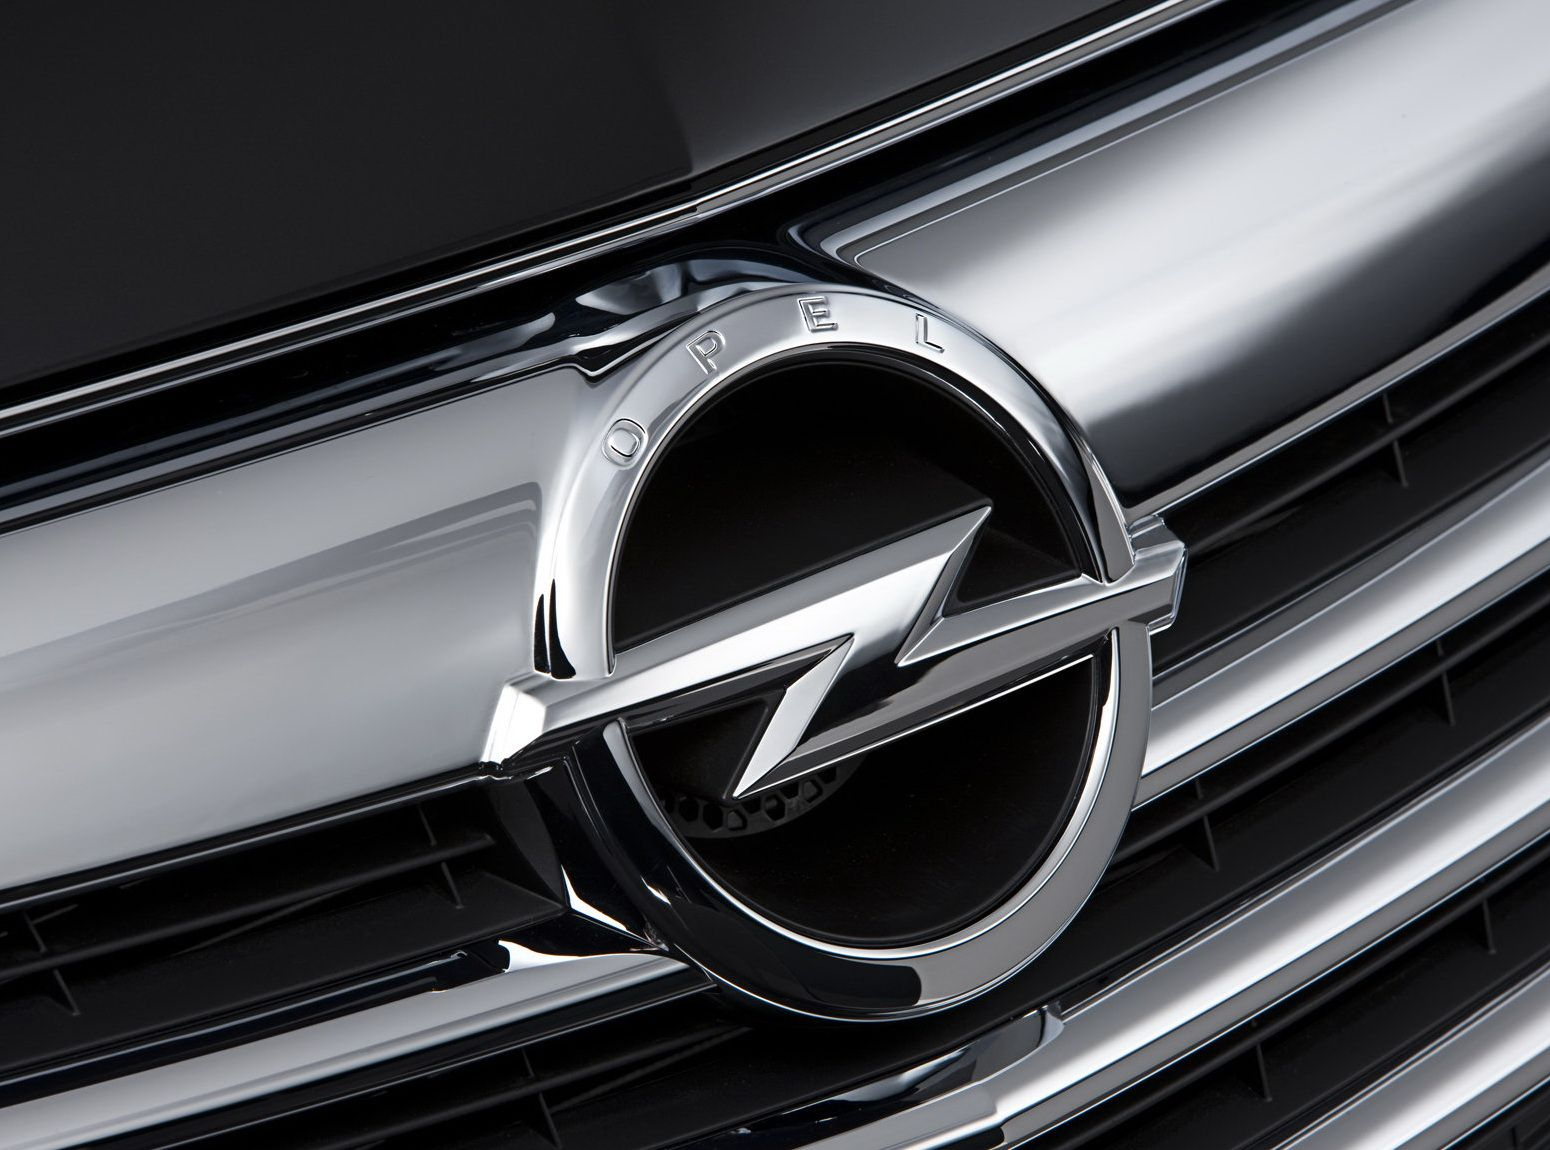 Black and Silver Car Logo - Opel Logo, Opel Car Symbol and History | Car Brand Names.com